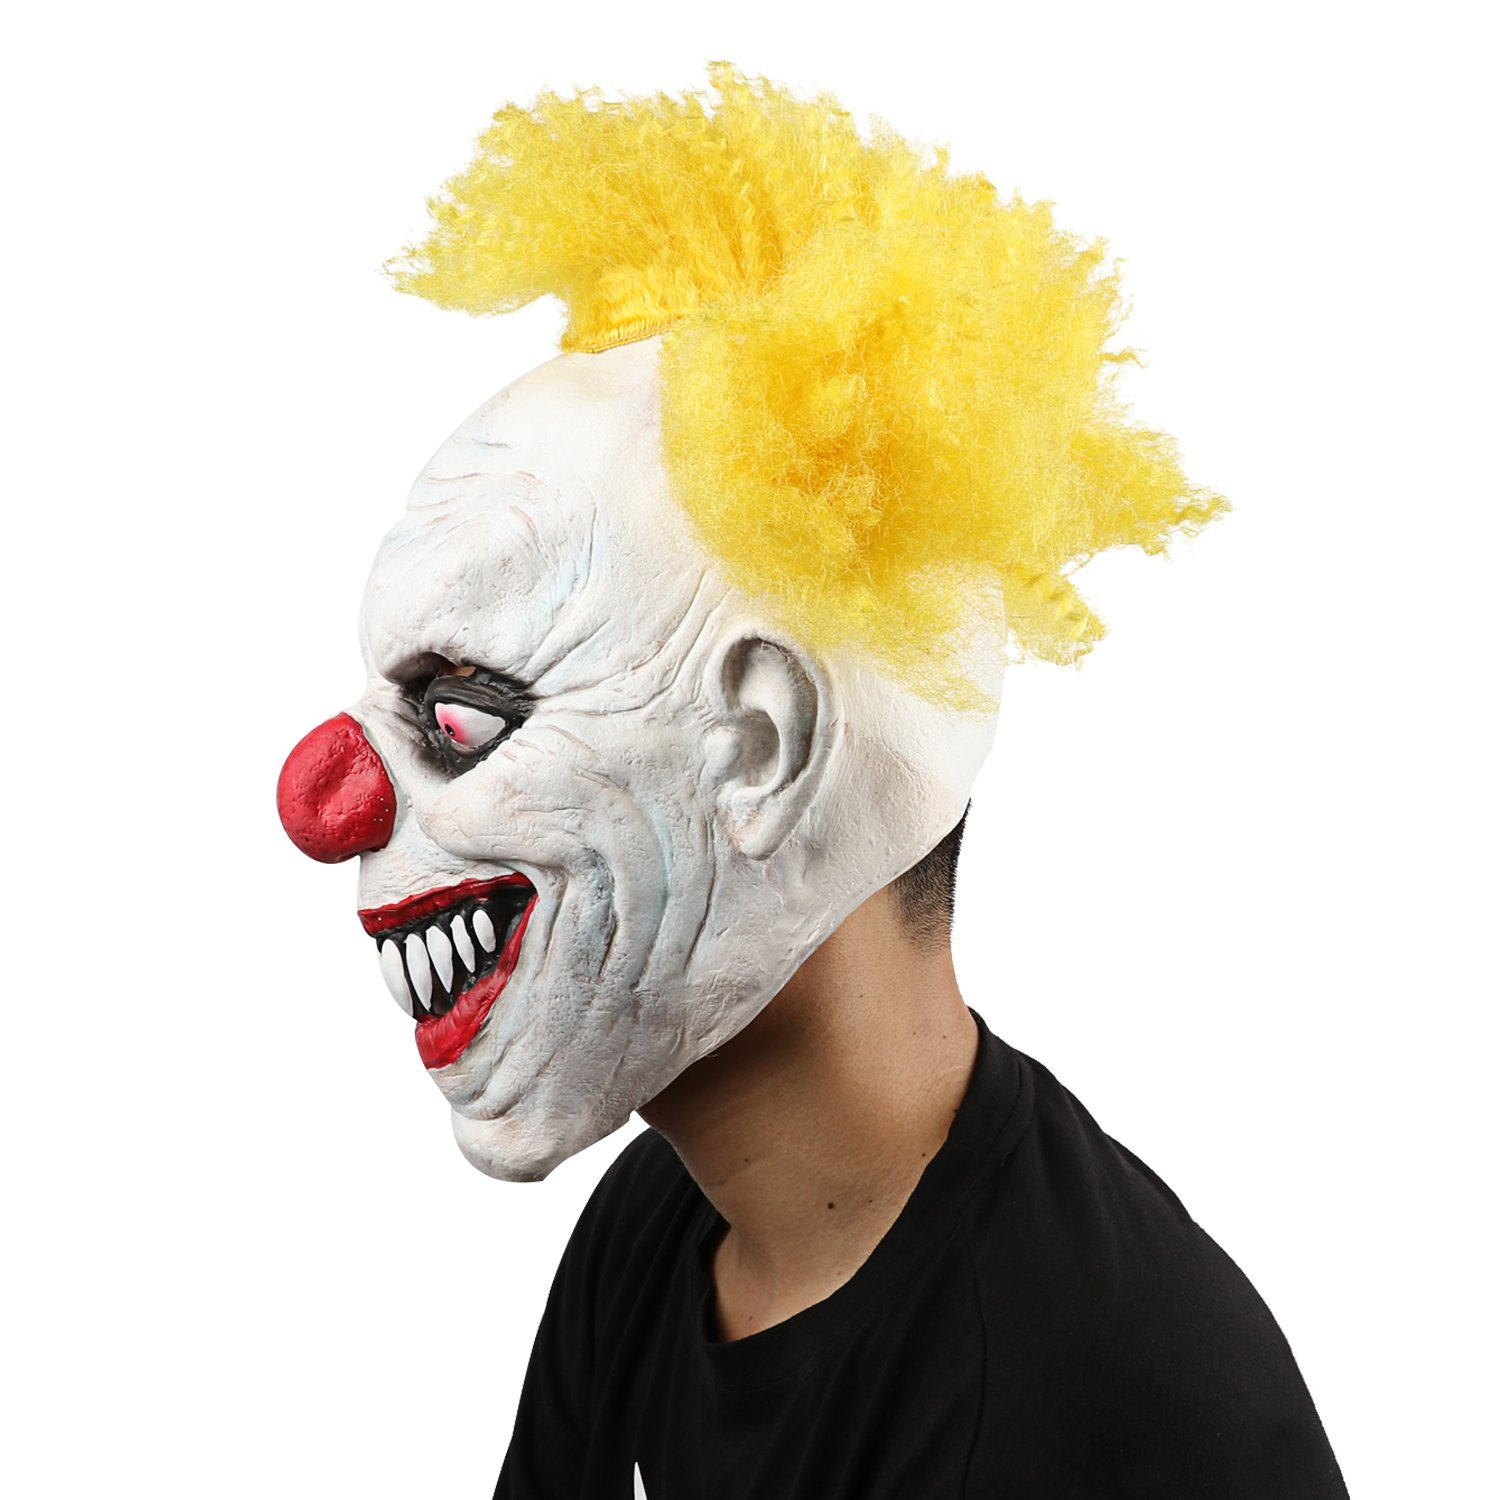 XIAO MO GU Latex Halloween Party Cosplay Face Mask Clown Costumes Mask(Yellow Hair)